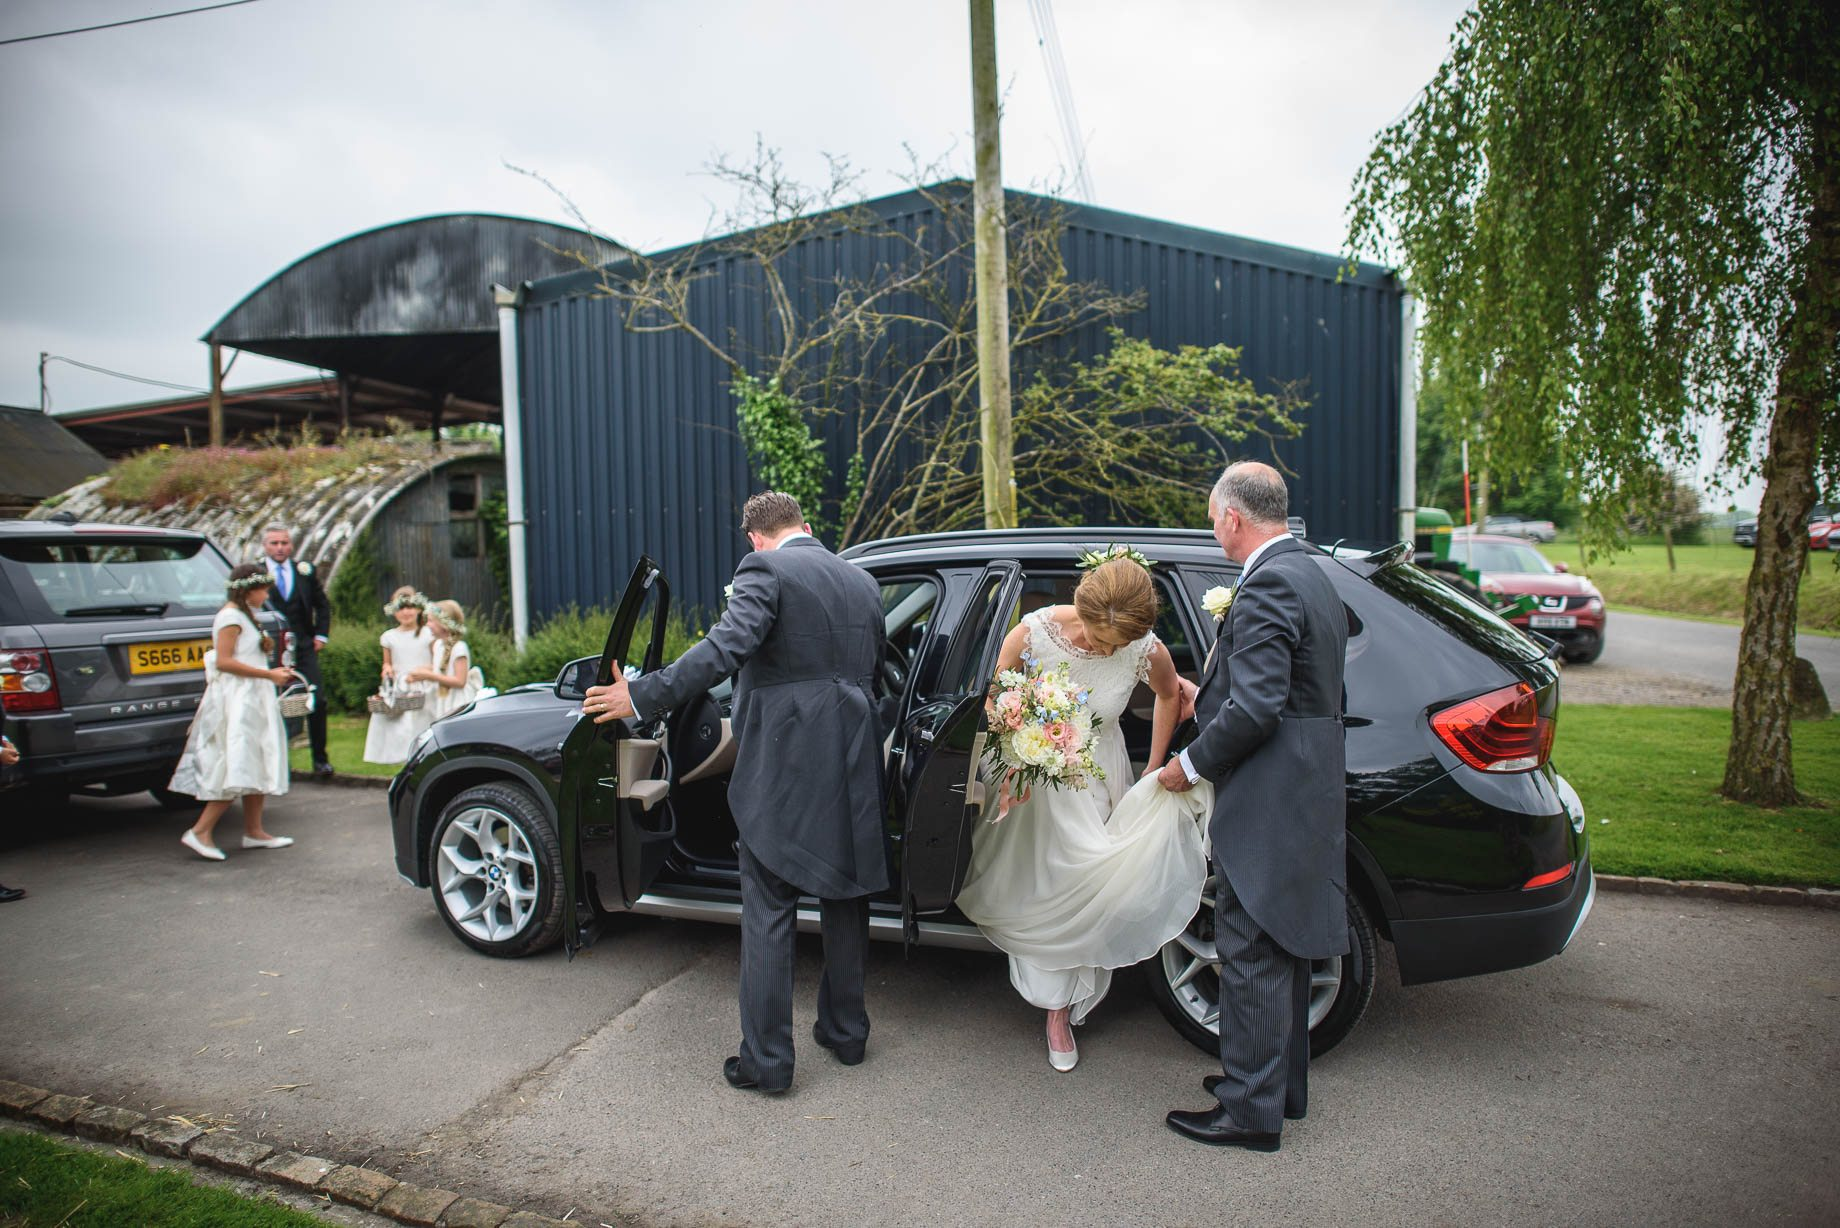 Wiltshire wedding photography by Guy Collier - Lucie and Matt (44 of 198)